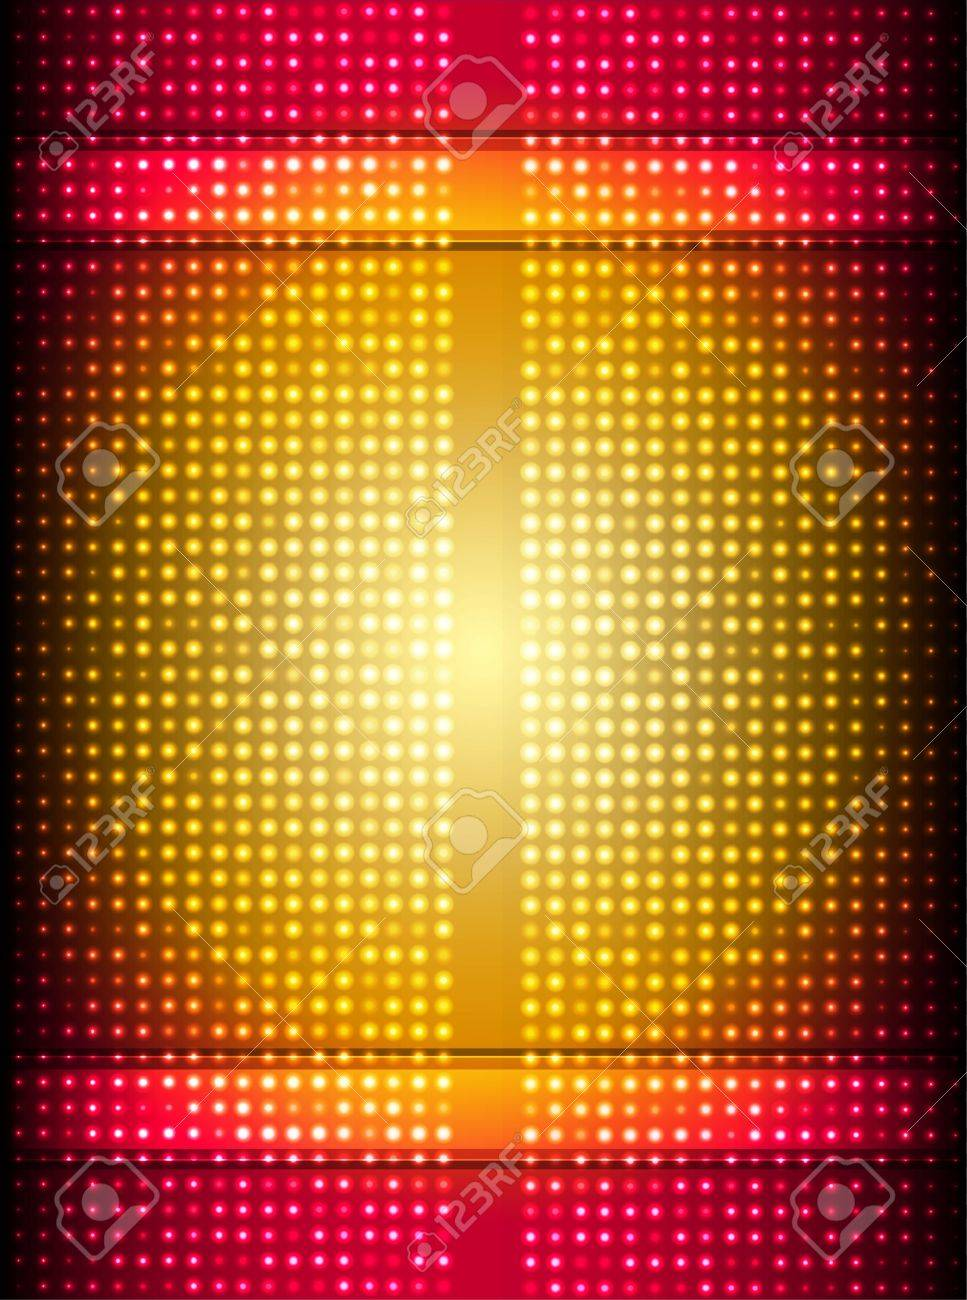 abstract red and gold background - 12185007